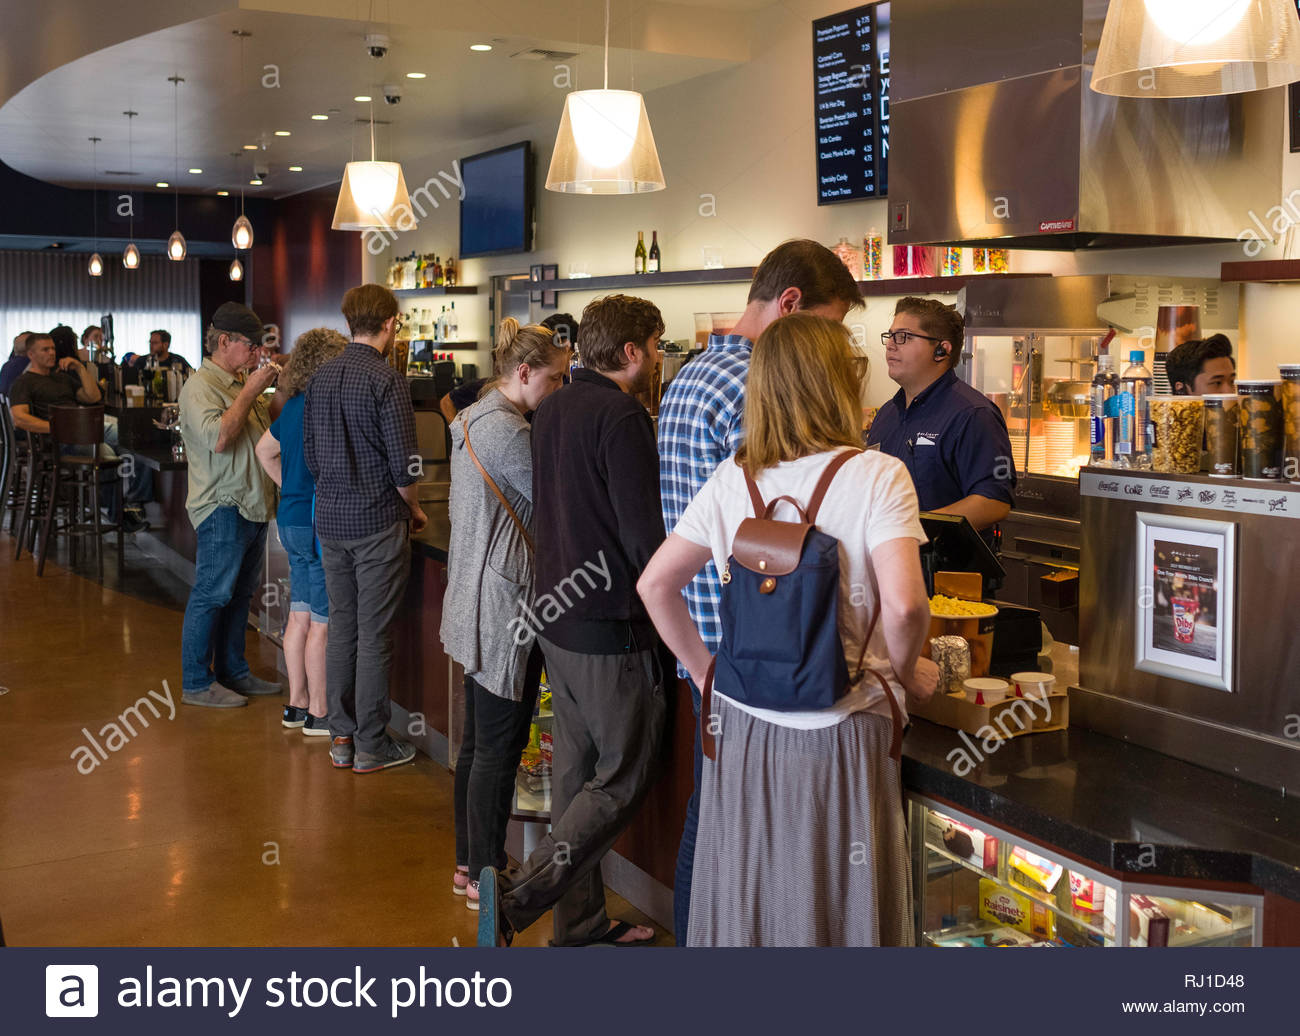 Customers standing at concession counter inside Arclight Cinemas buying food and drink before the start of their movie, Santa Monica Place, Santa Moni - Stock Image